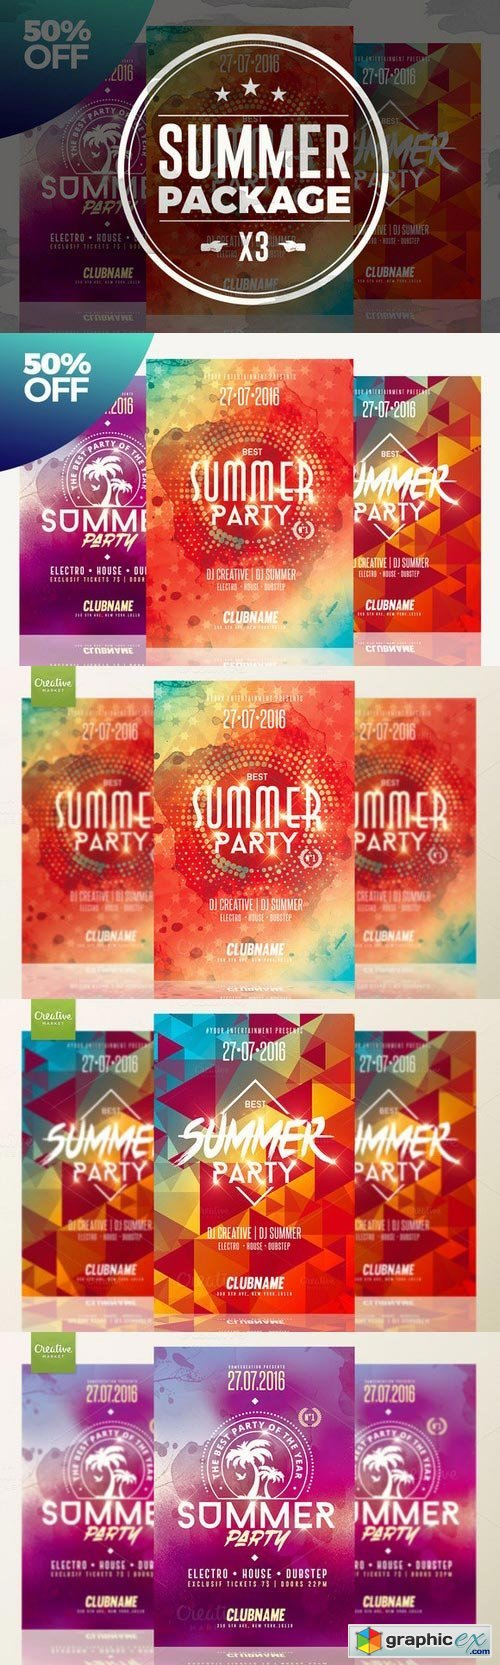 50%OFF - Summer Flyer Bundle v01